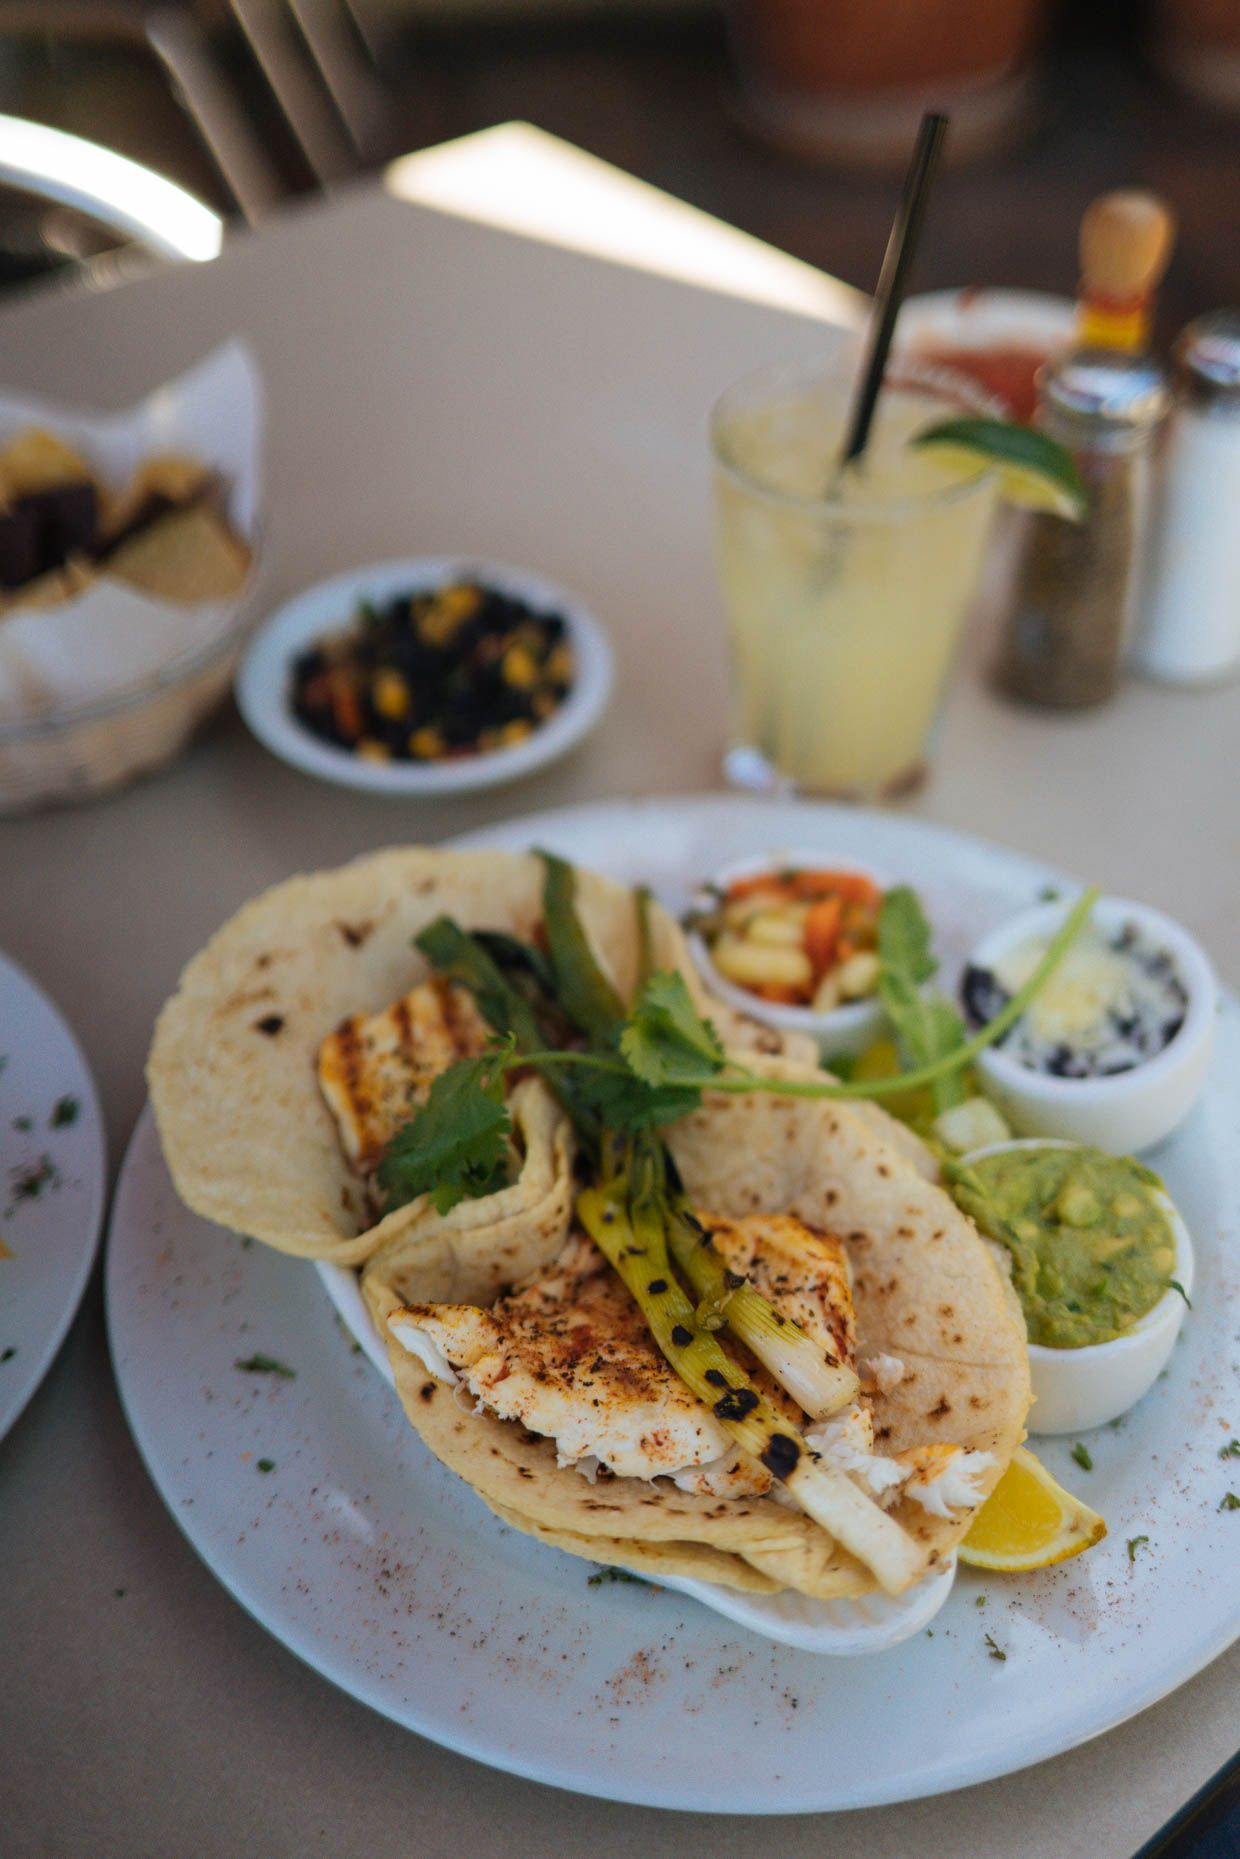 Find The Best Place To Eat In Santa Barbara And Ynez Valley Try Dos Carlitos For Mexican Food More On Thetastesf